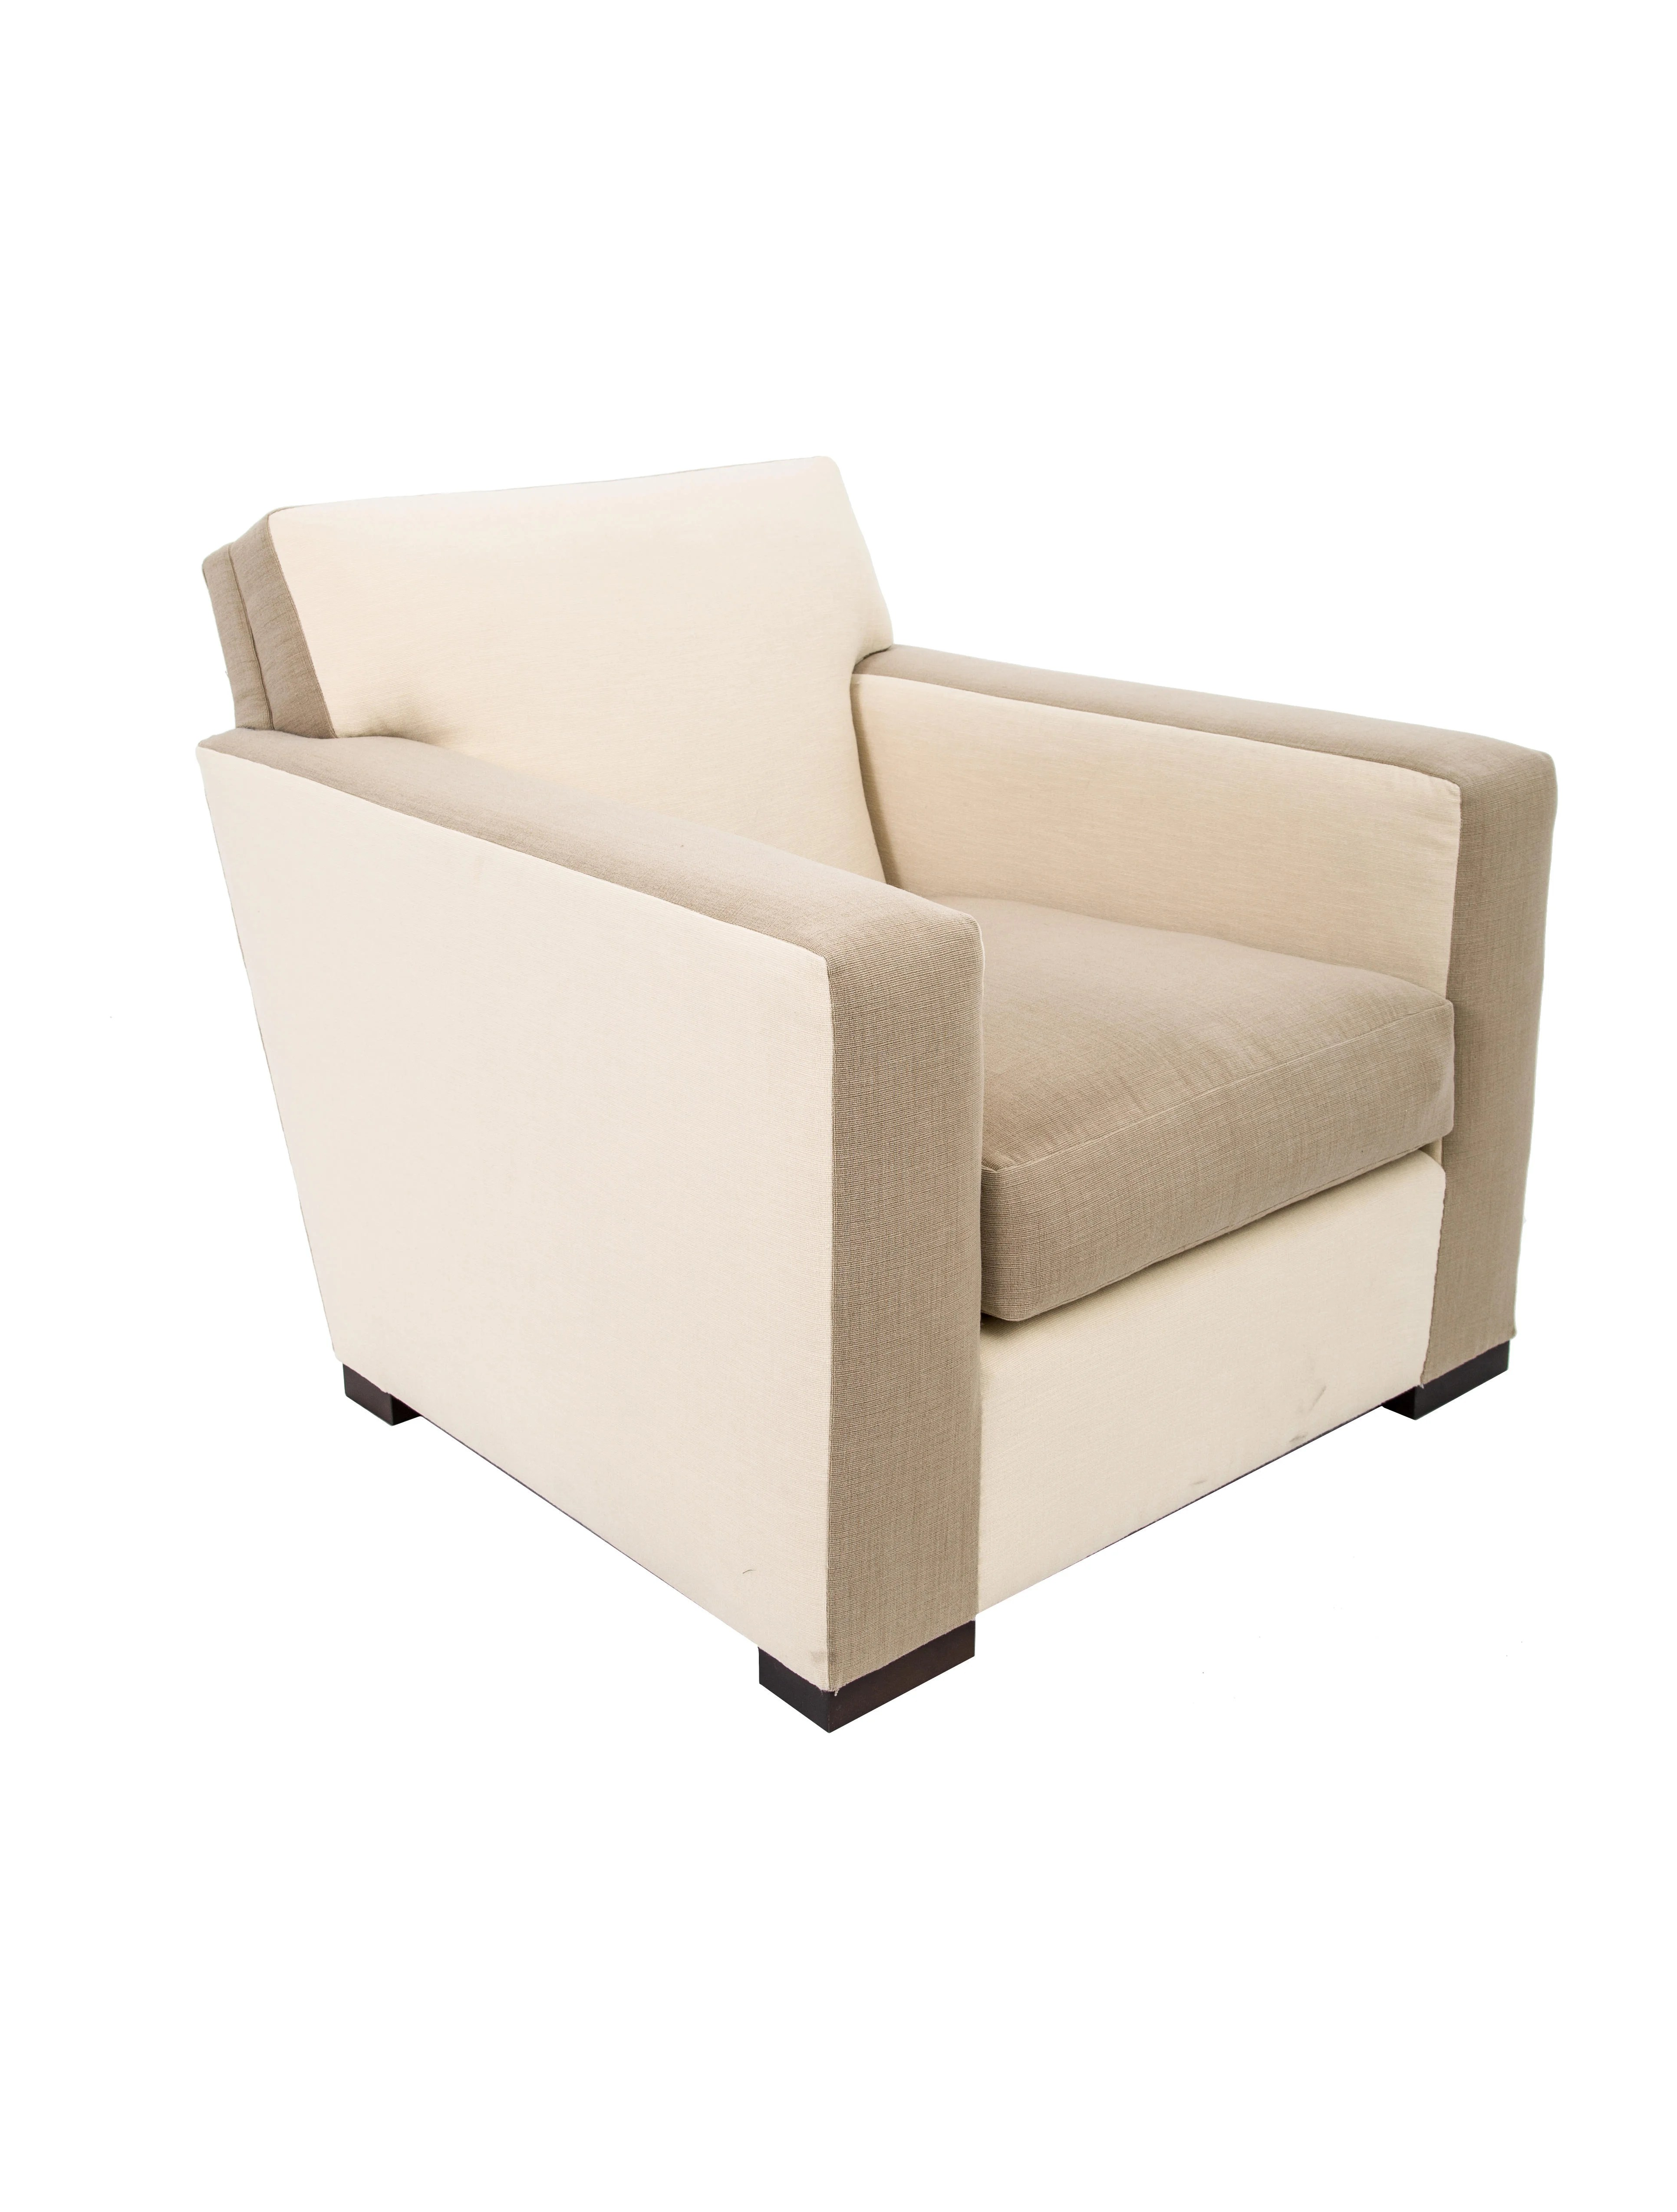 Upholstered Club Chair Donghia Upholstered Club Chair Furniture Donnh20018